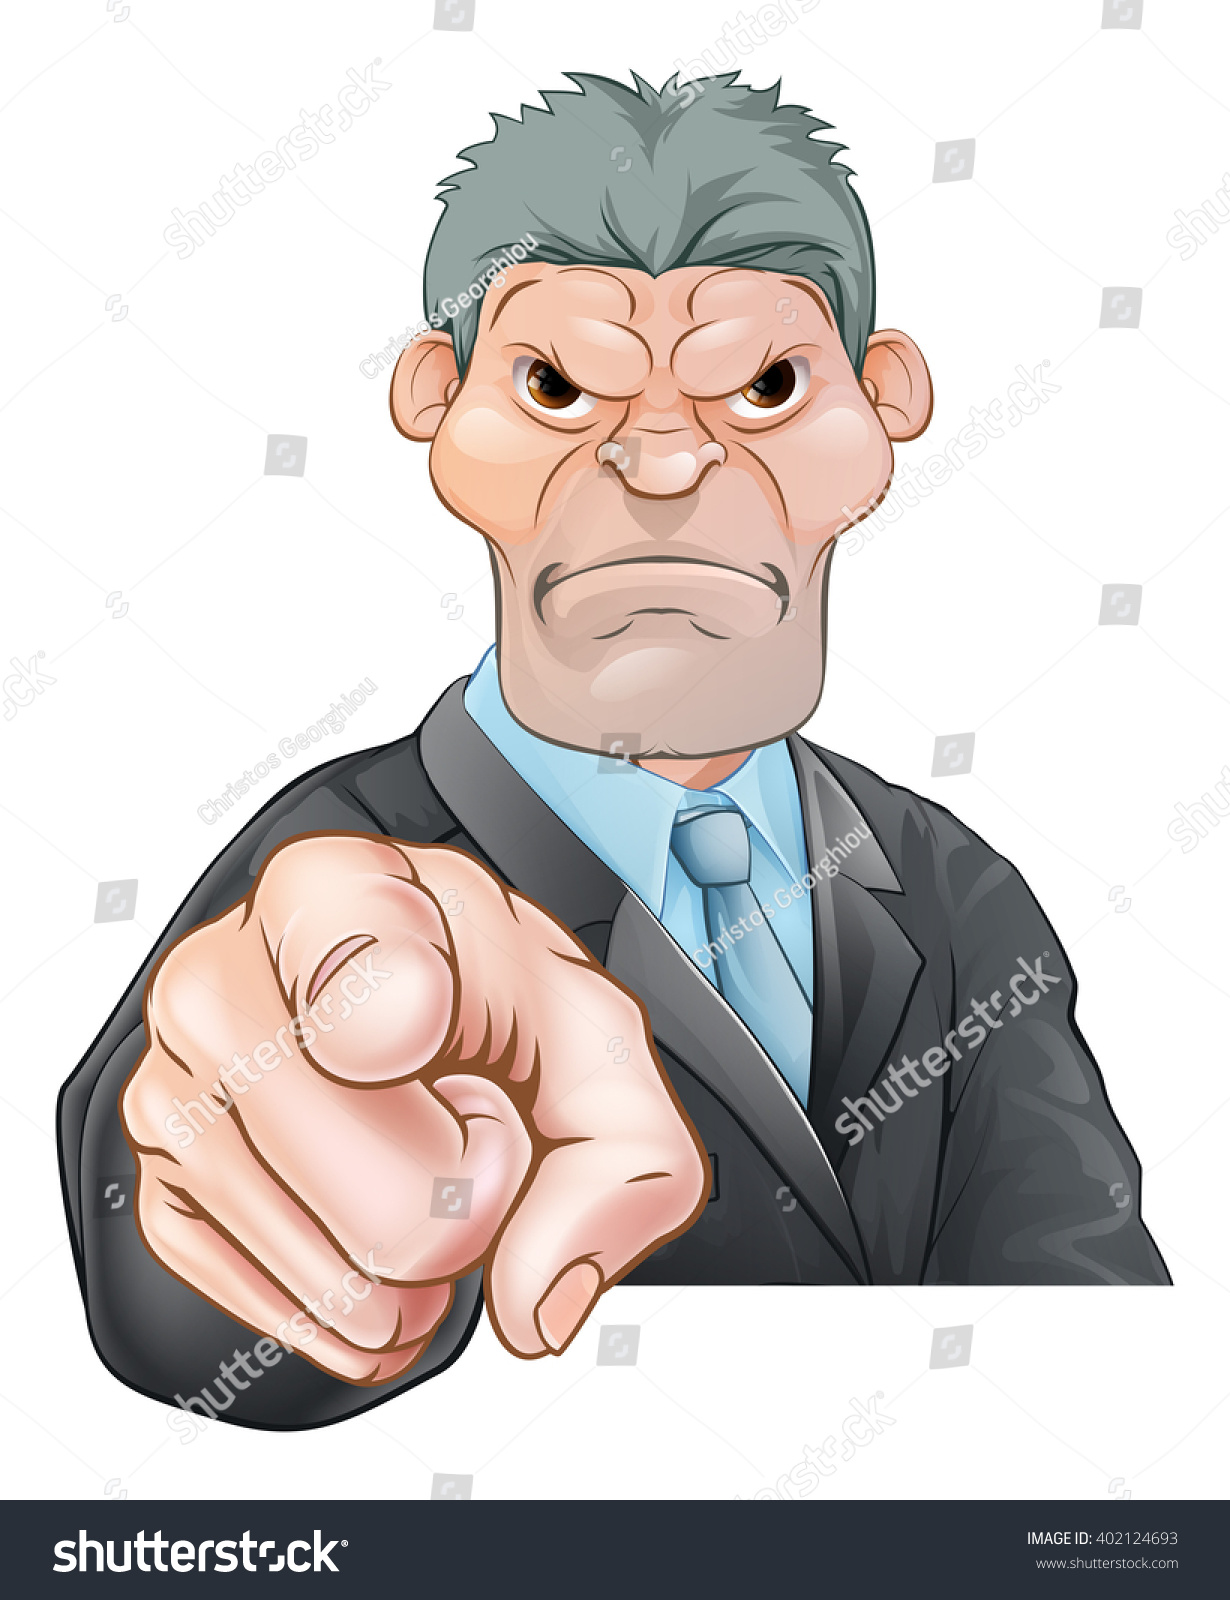 threatening mean looking cartoon businessman manager stock vector a threatening mean looking cartoon businessman manager boss or office bully pointing